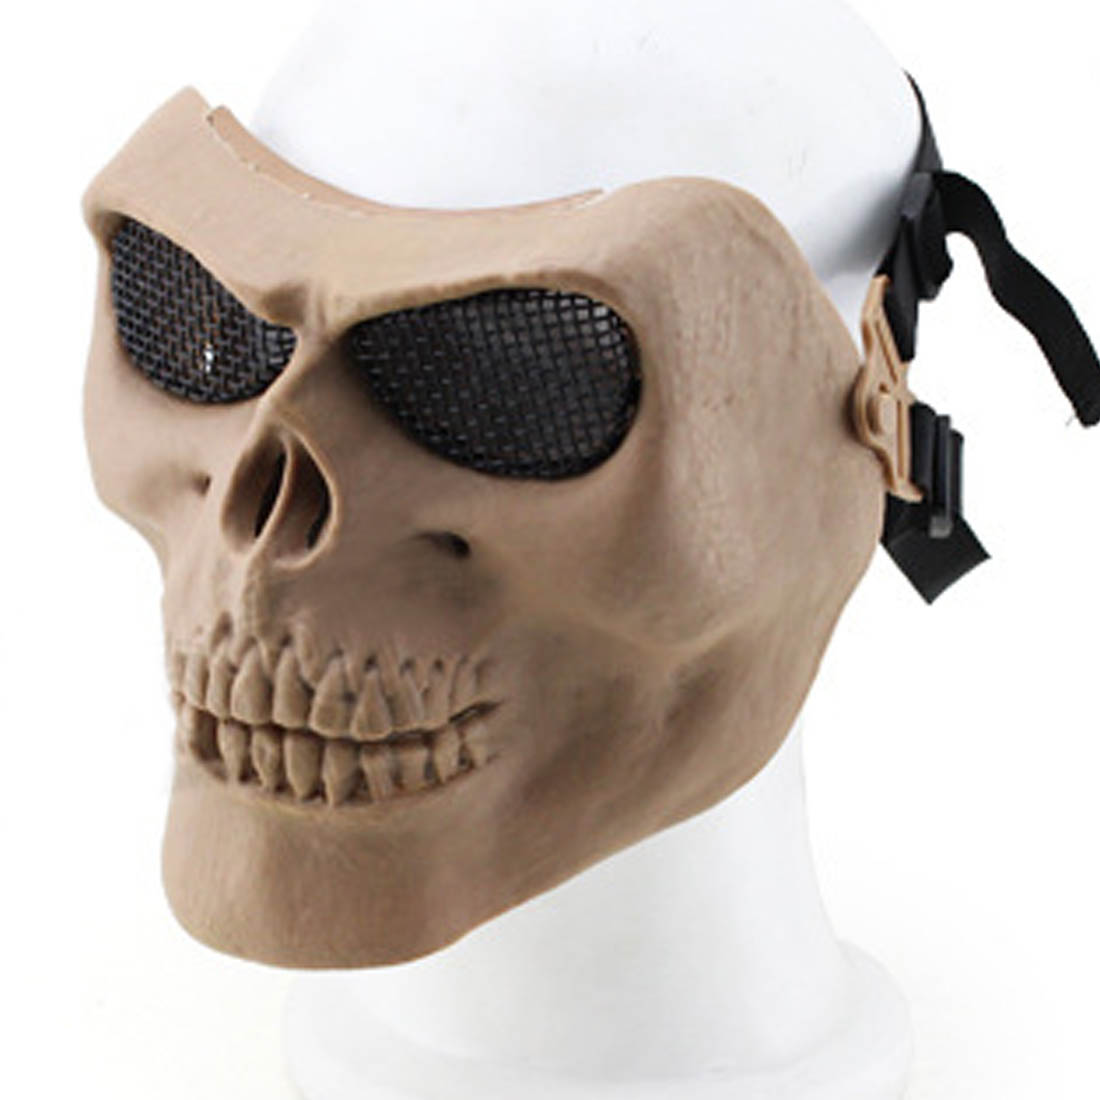 WST New Emirates Mask Outdoor Tactical Paintball Shooting Mask For Airsoft Halloween Activity Paintball Accessories